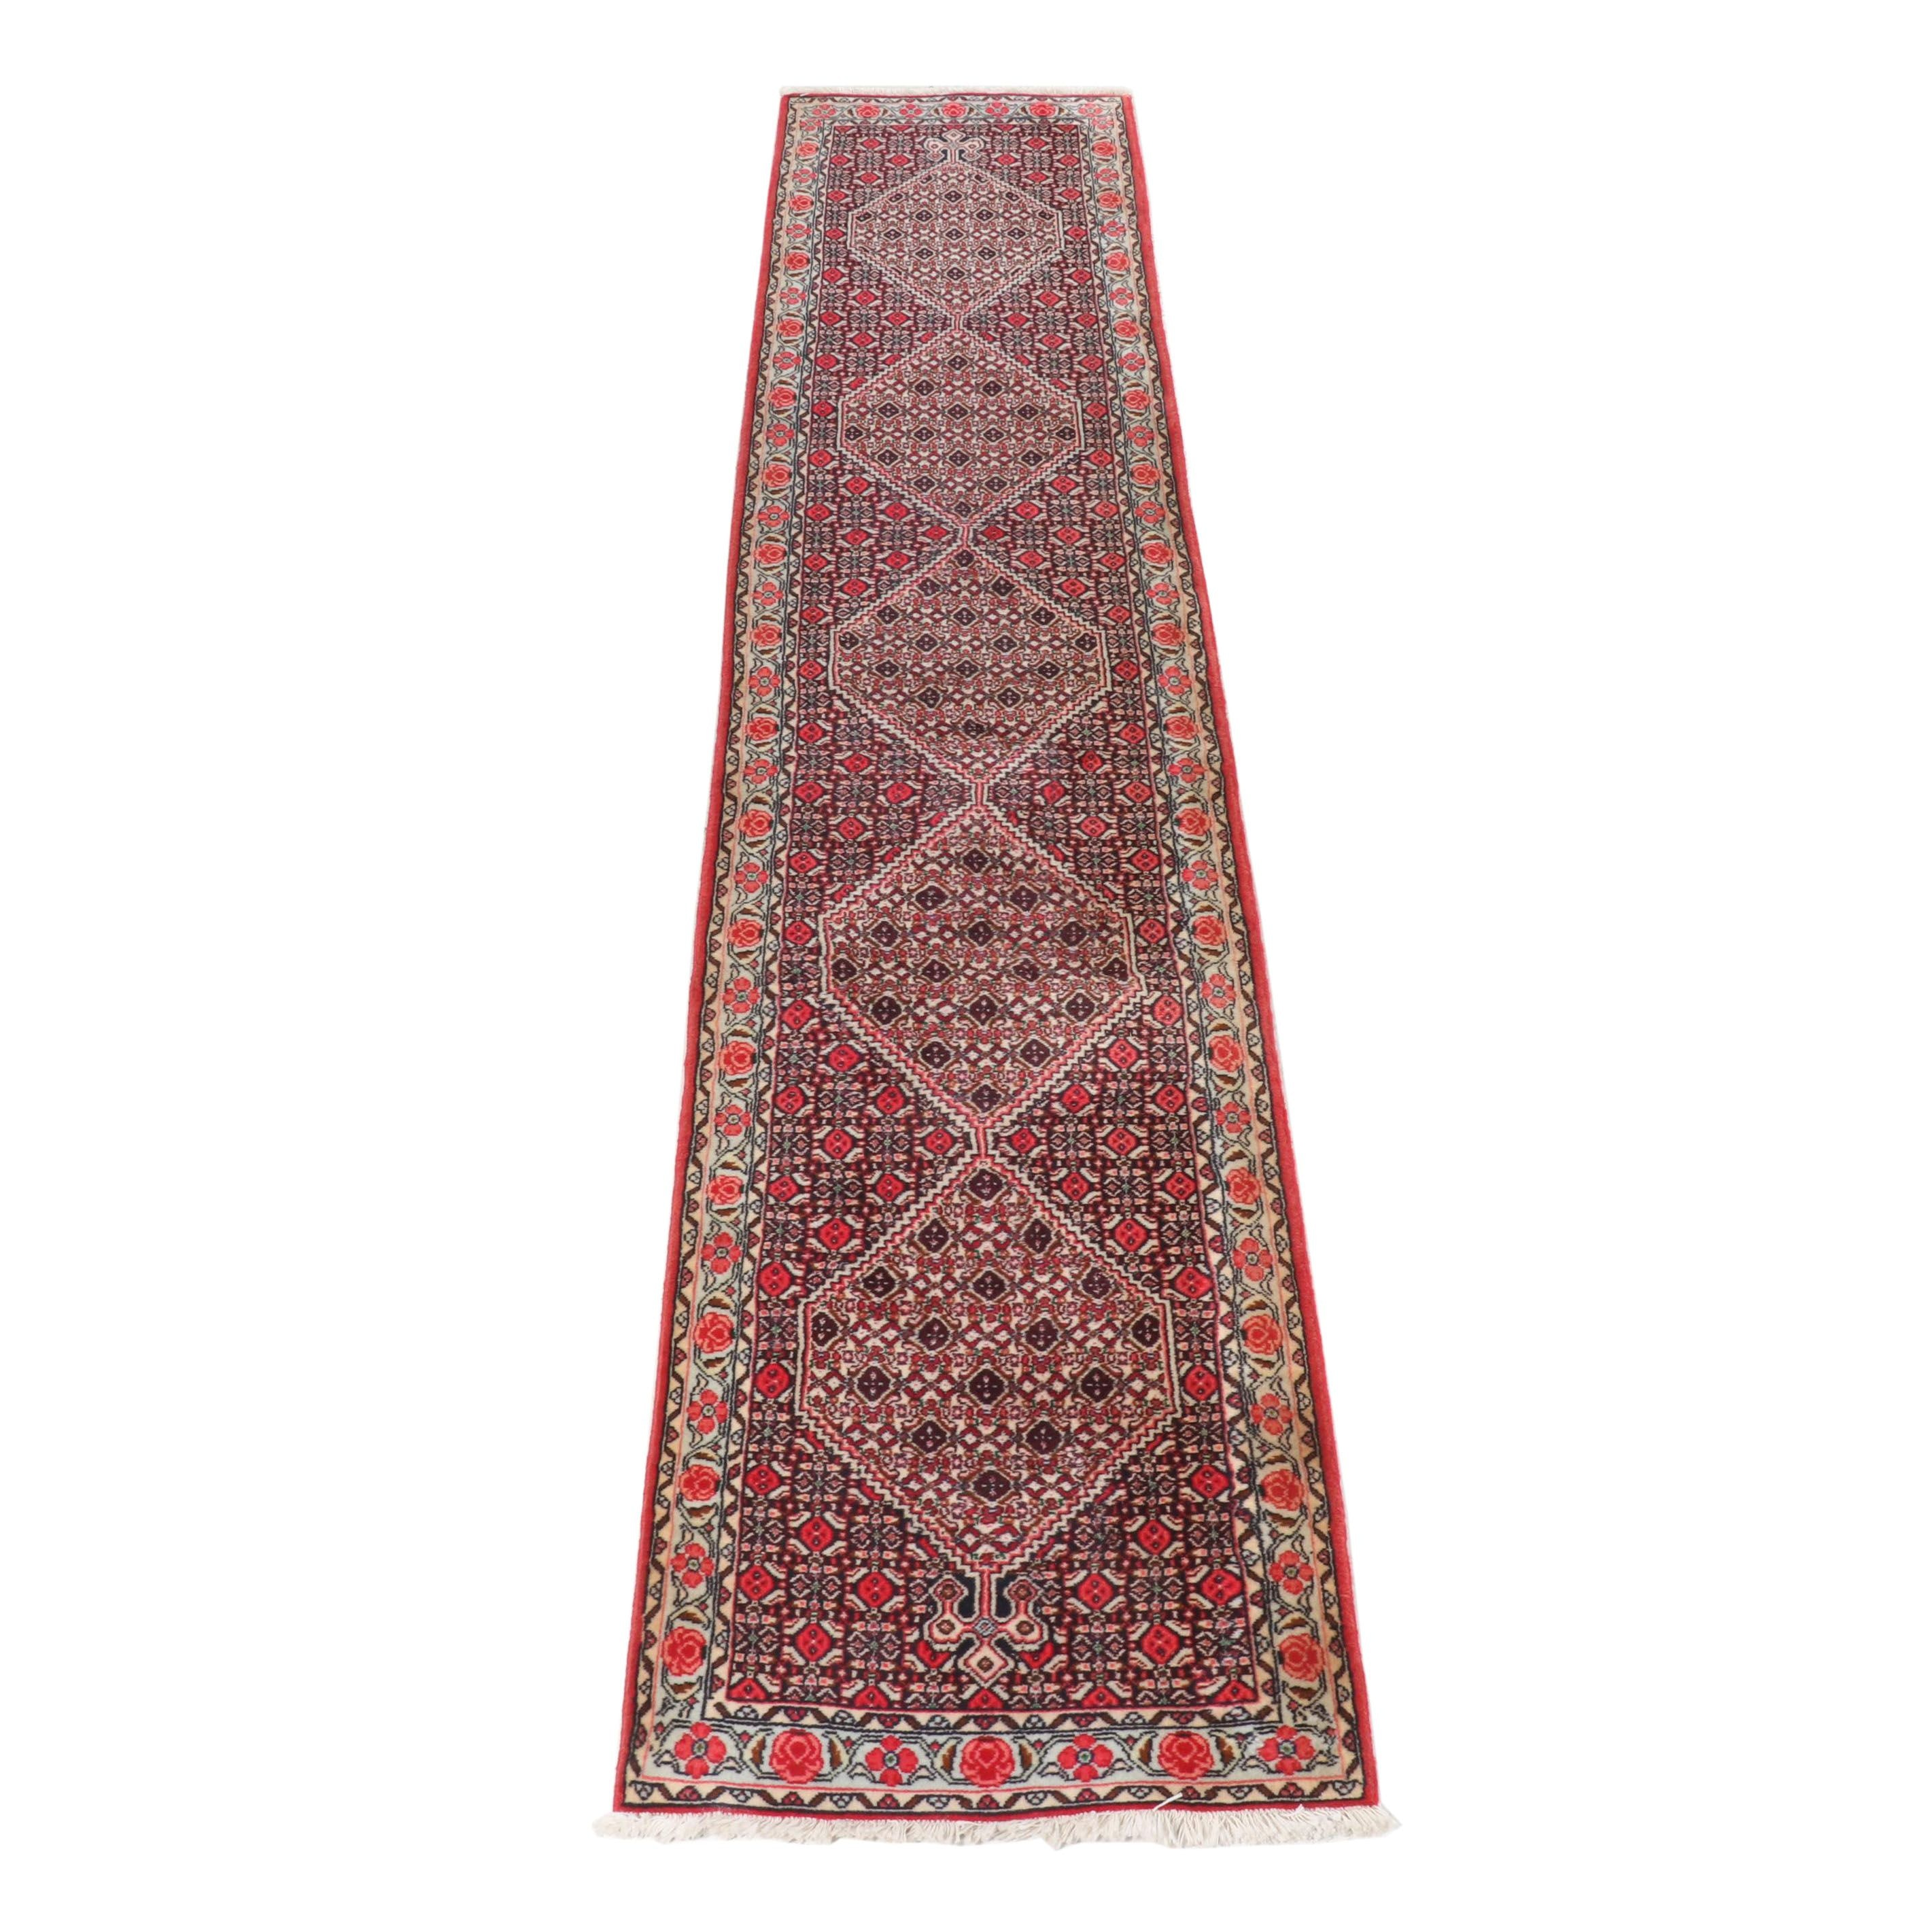 Hand-Knotted Persian Senneh Wool Carpet Runner